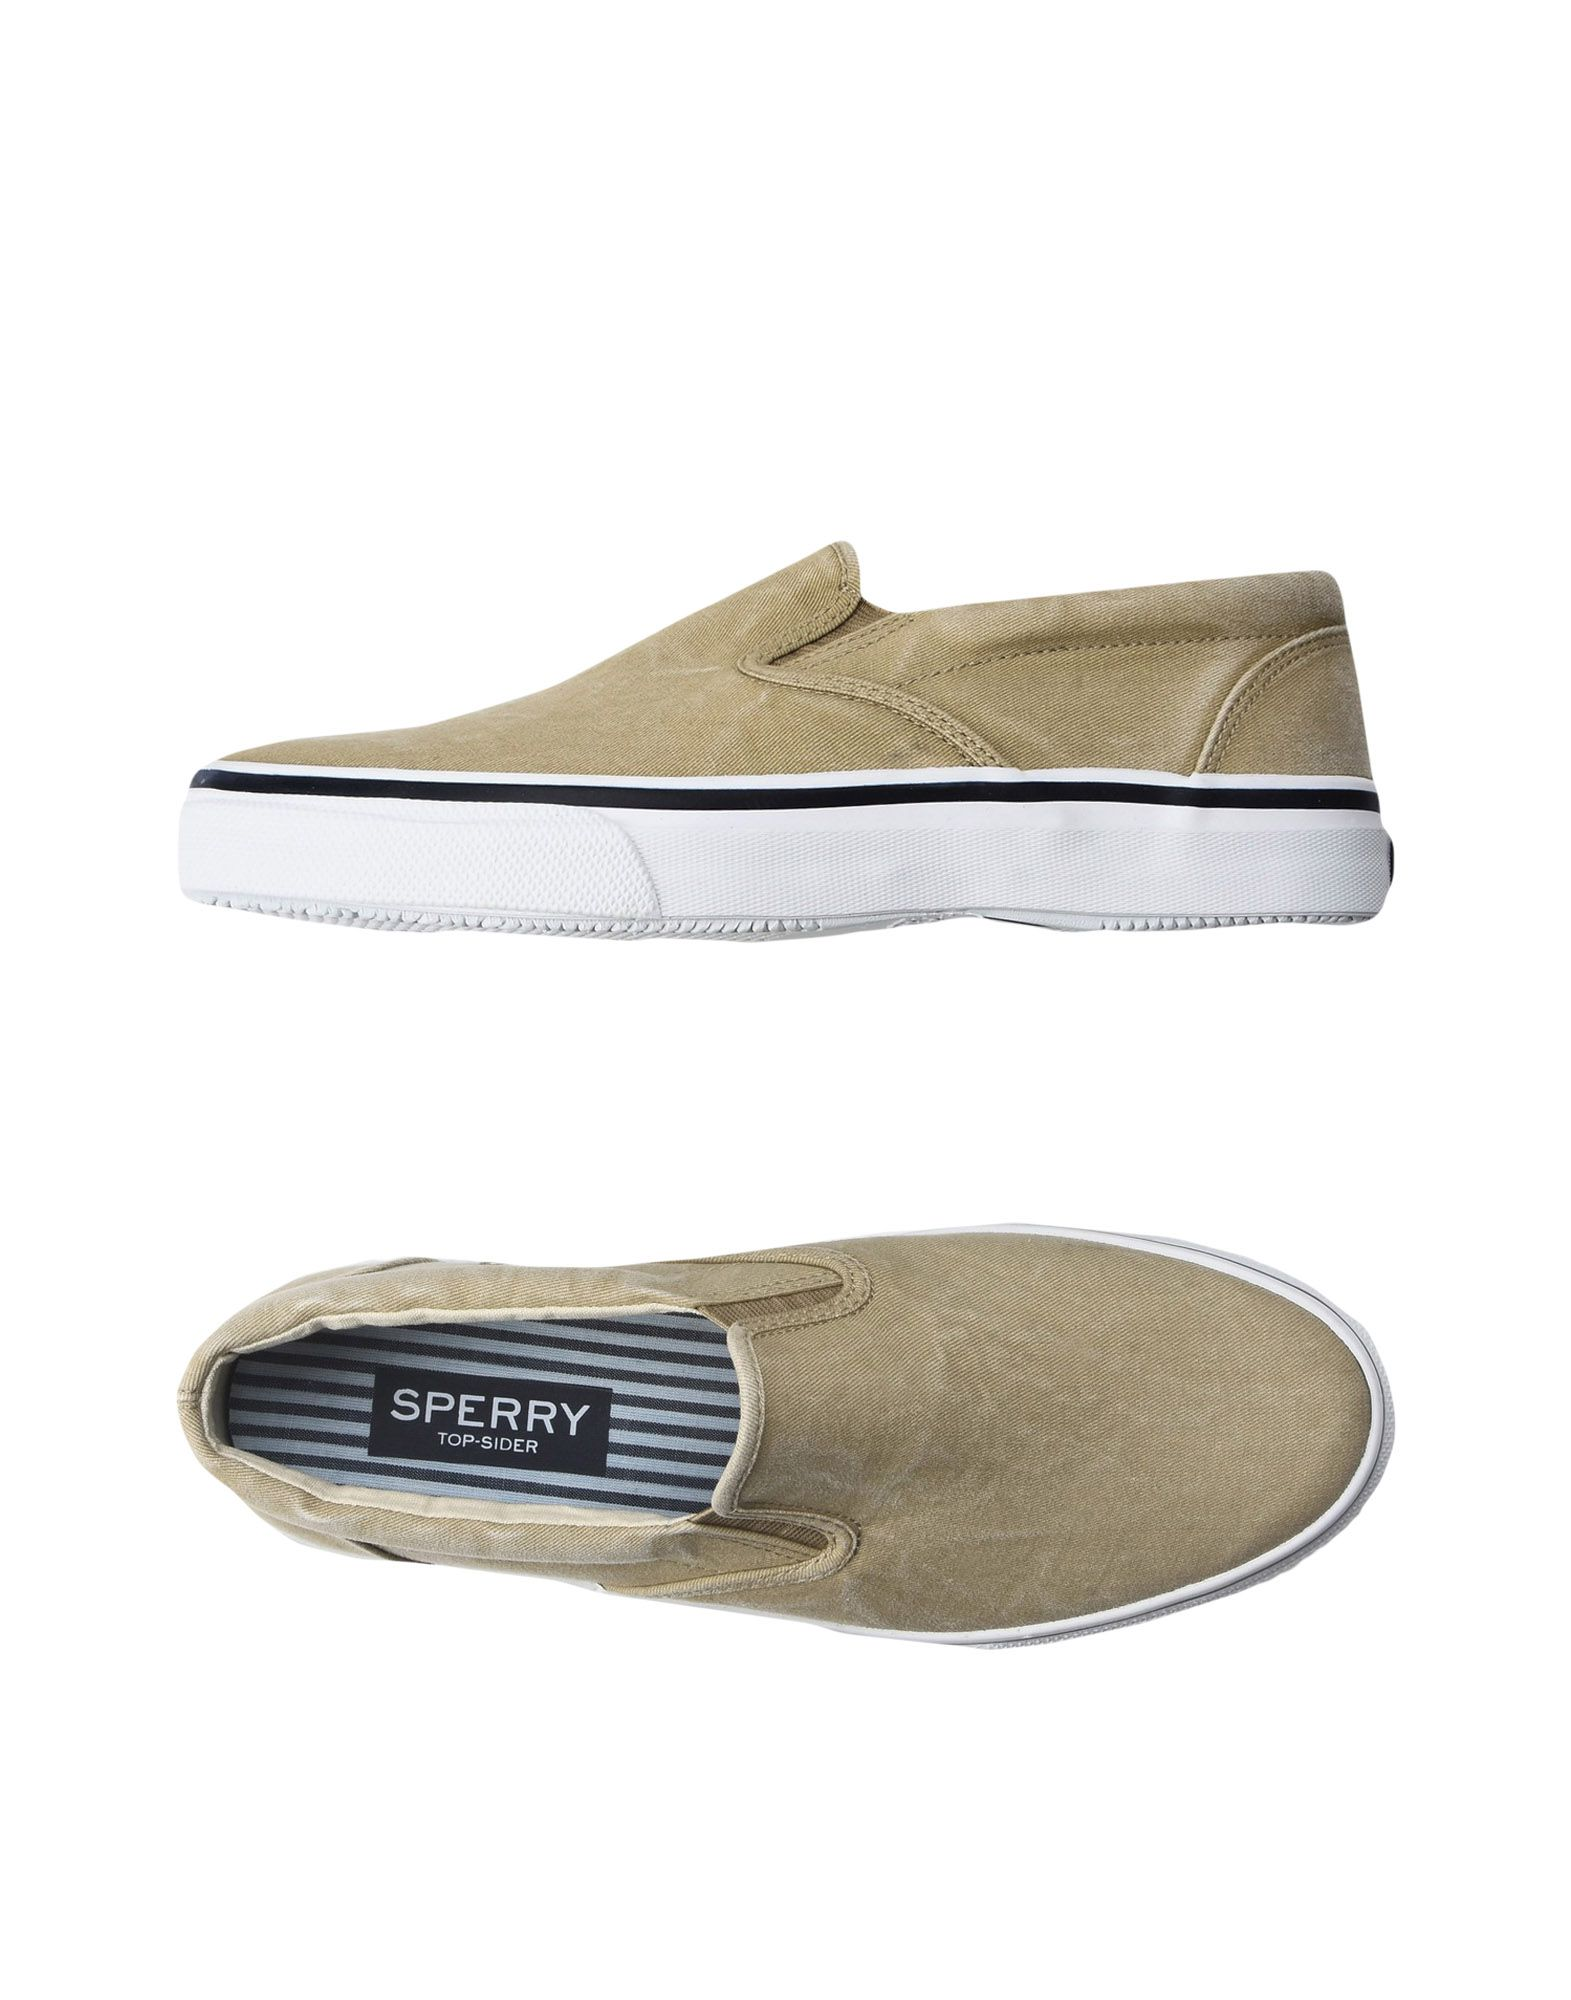 Sperry Top-Sider Striper S/O Sperry - Sneakers - Men Sperry S/O Top-Sider Sneakers online on  Australia - 11221120QJ 3d6592